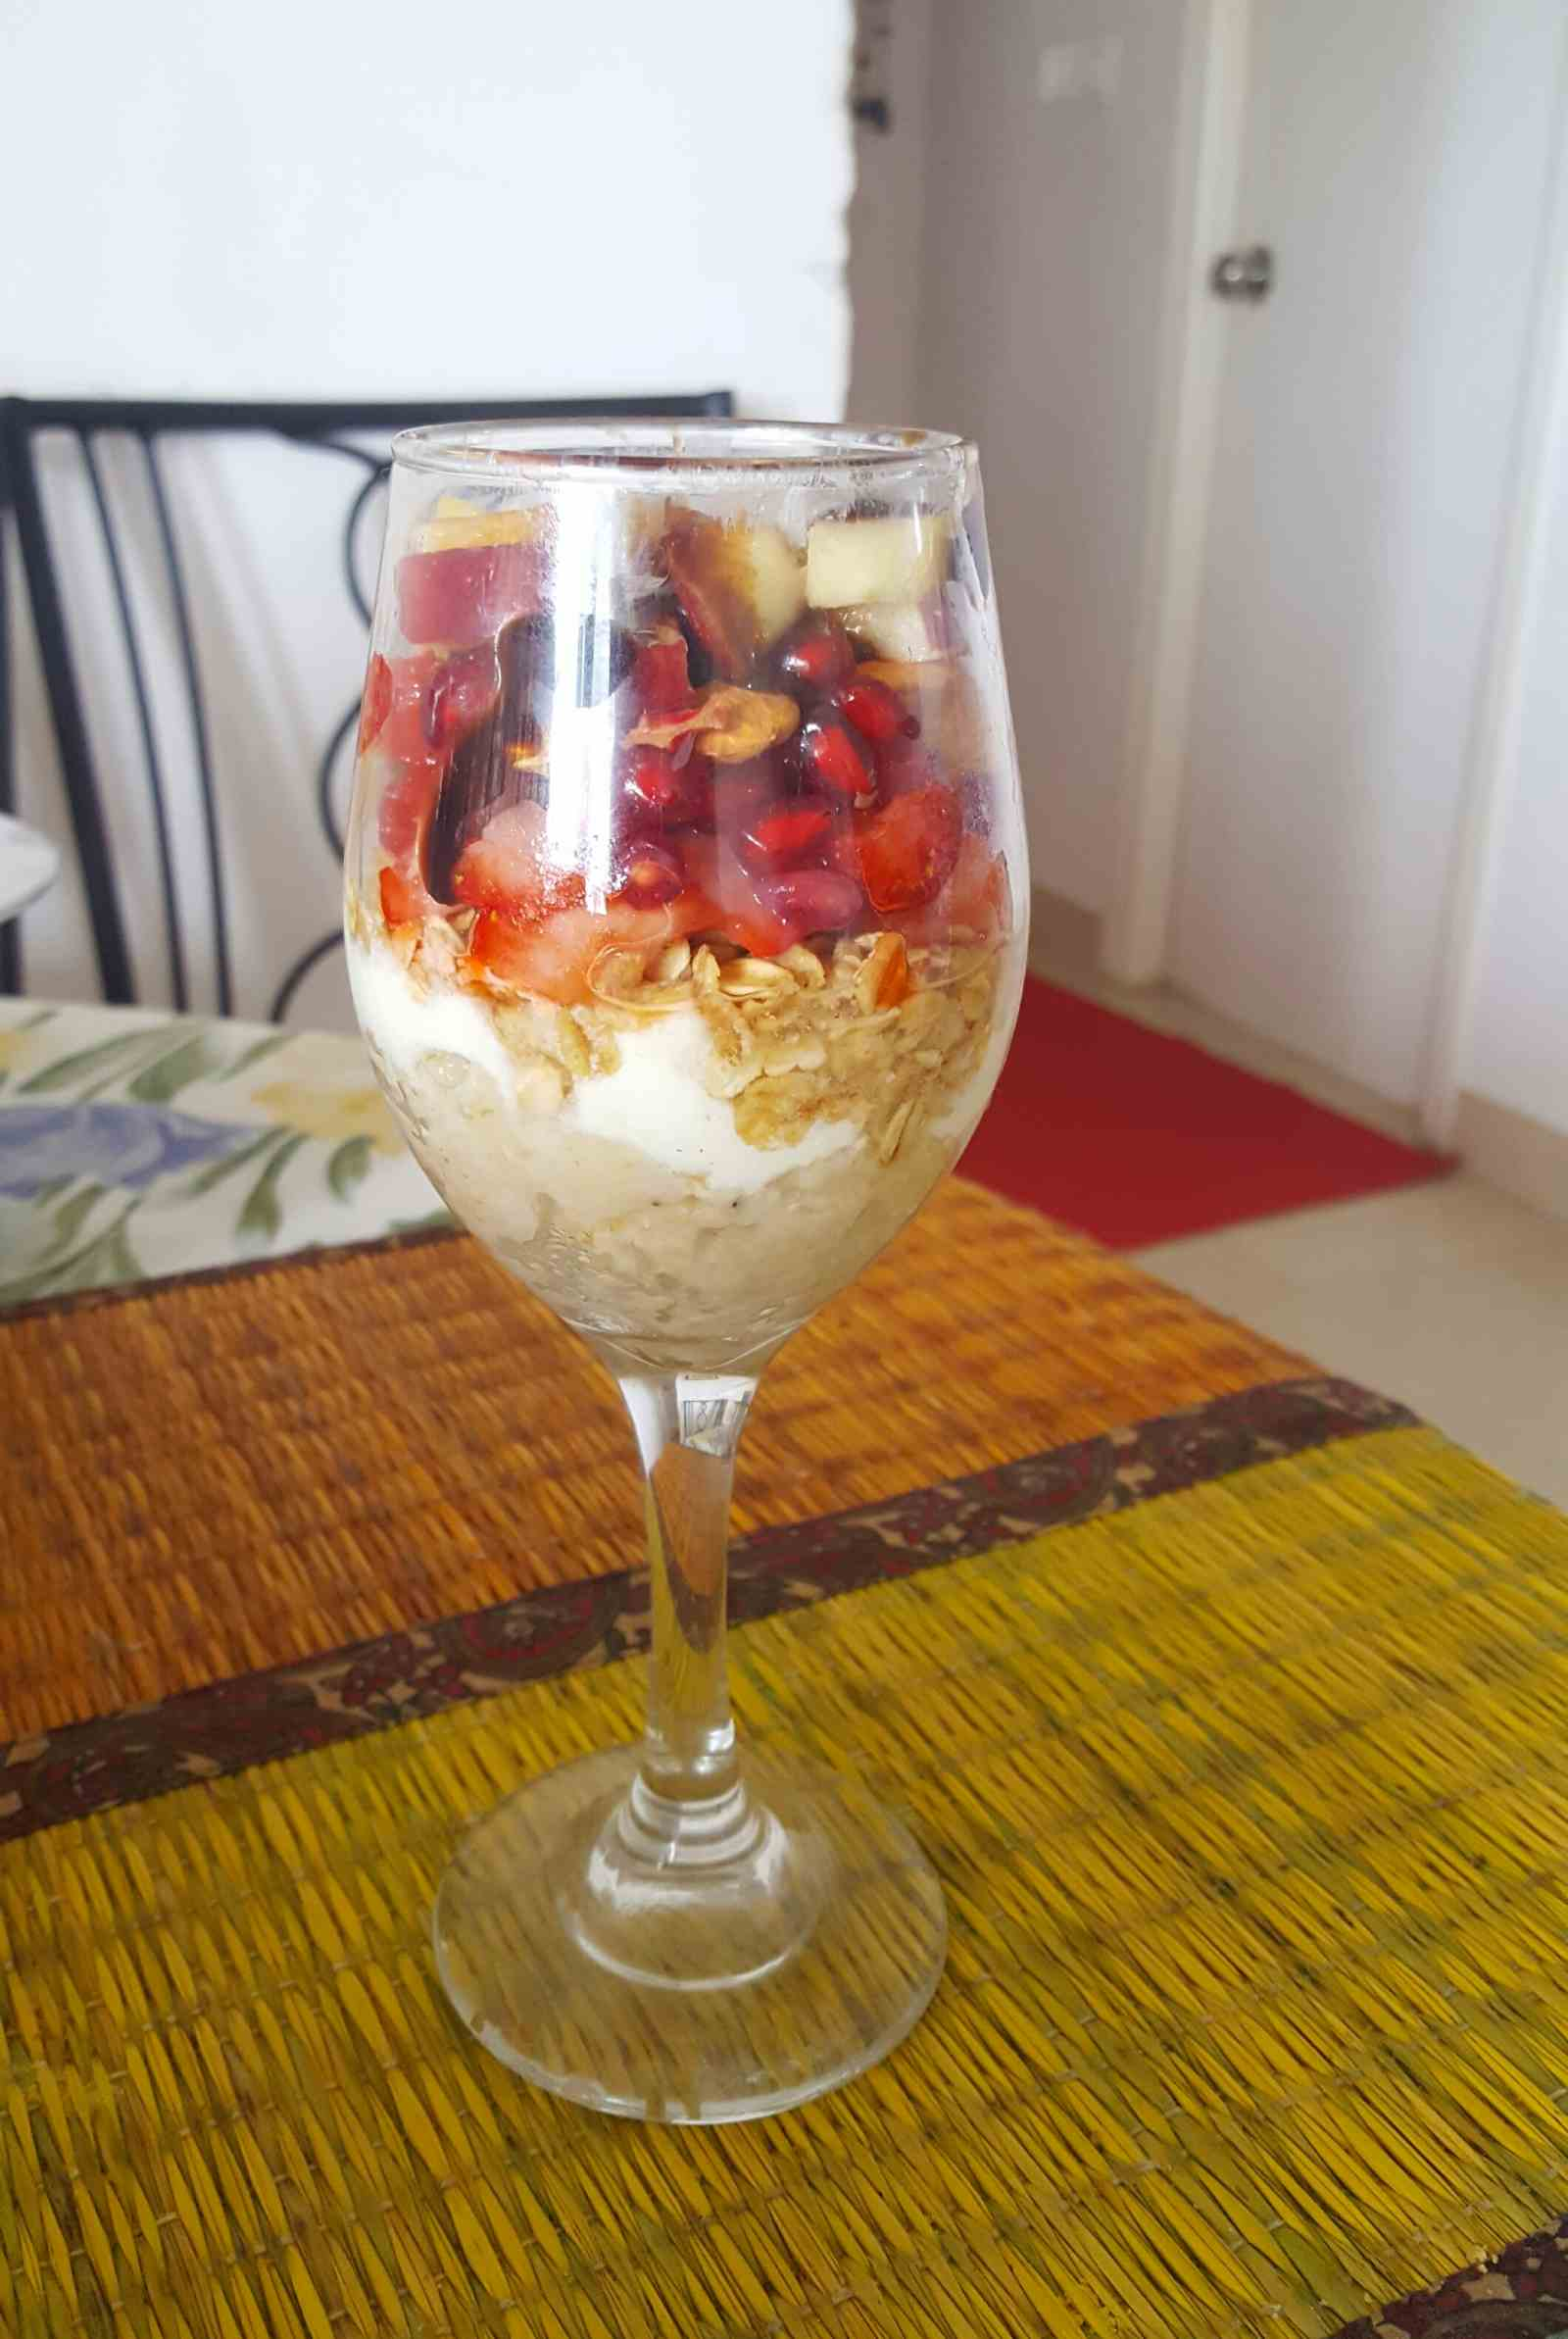 Oats & Yogurt Parfait with Chocolate Almond Topping Recipe